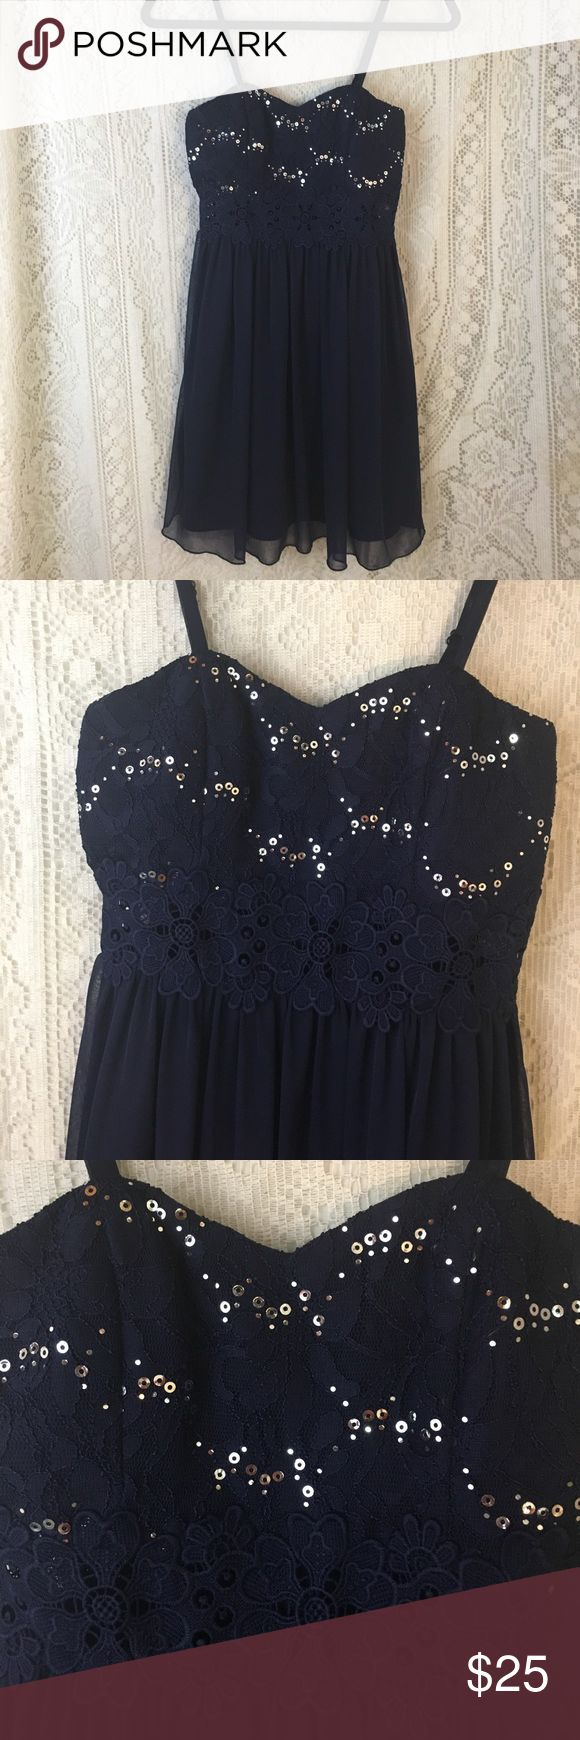 "Short navy formal dress w sequins sz 1 Worn once. Navy blue polyester with silver sequins on the lace bodice front and back. All sequins intact. 1.5"" of lace at the waist will show skin. Adjustable spaghetti straps. Bodice and skirt are fully lined. lined. Hand washable. Lightly padded cups. Fully functional back zipper. 15"" armpit to armpit. 33"" shoulder to hem. EUC from a smoke free home. by & by Dresses Prom"